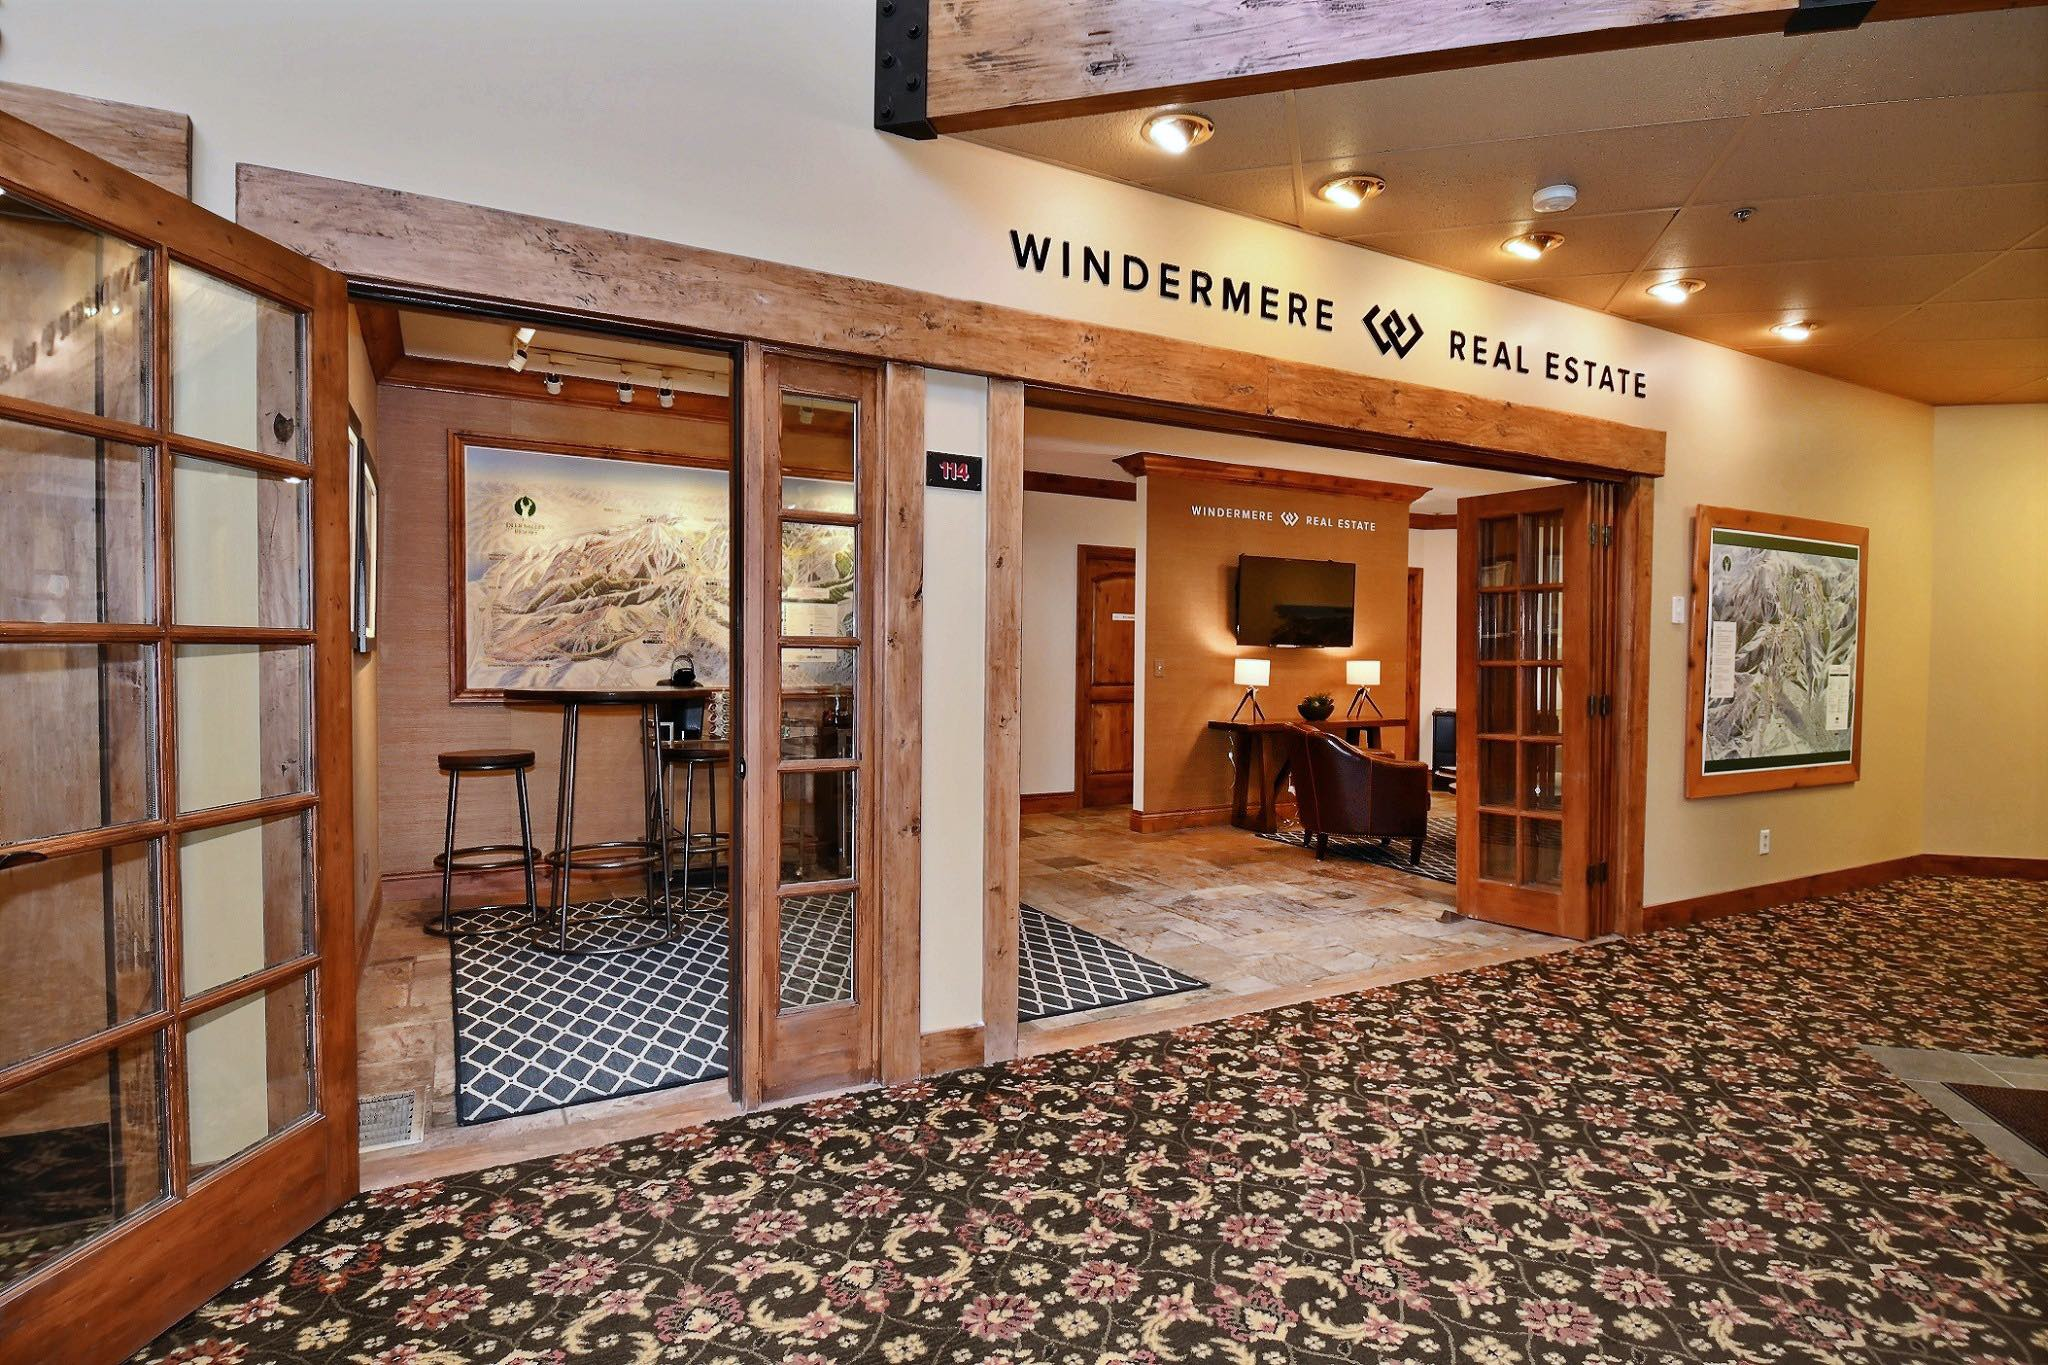 Windermere-Real-Estate-Deer-Valley-Plaza-Web